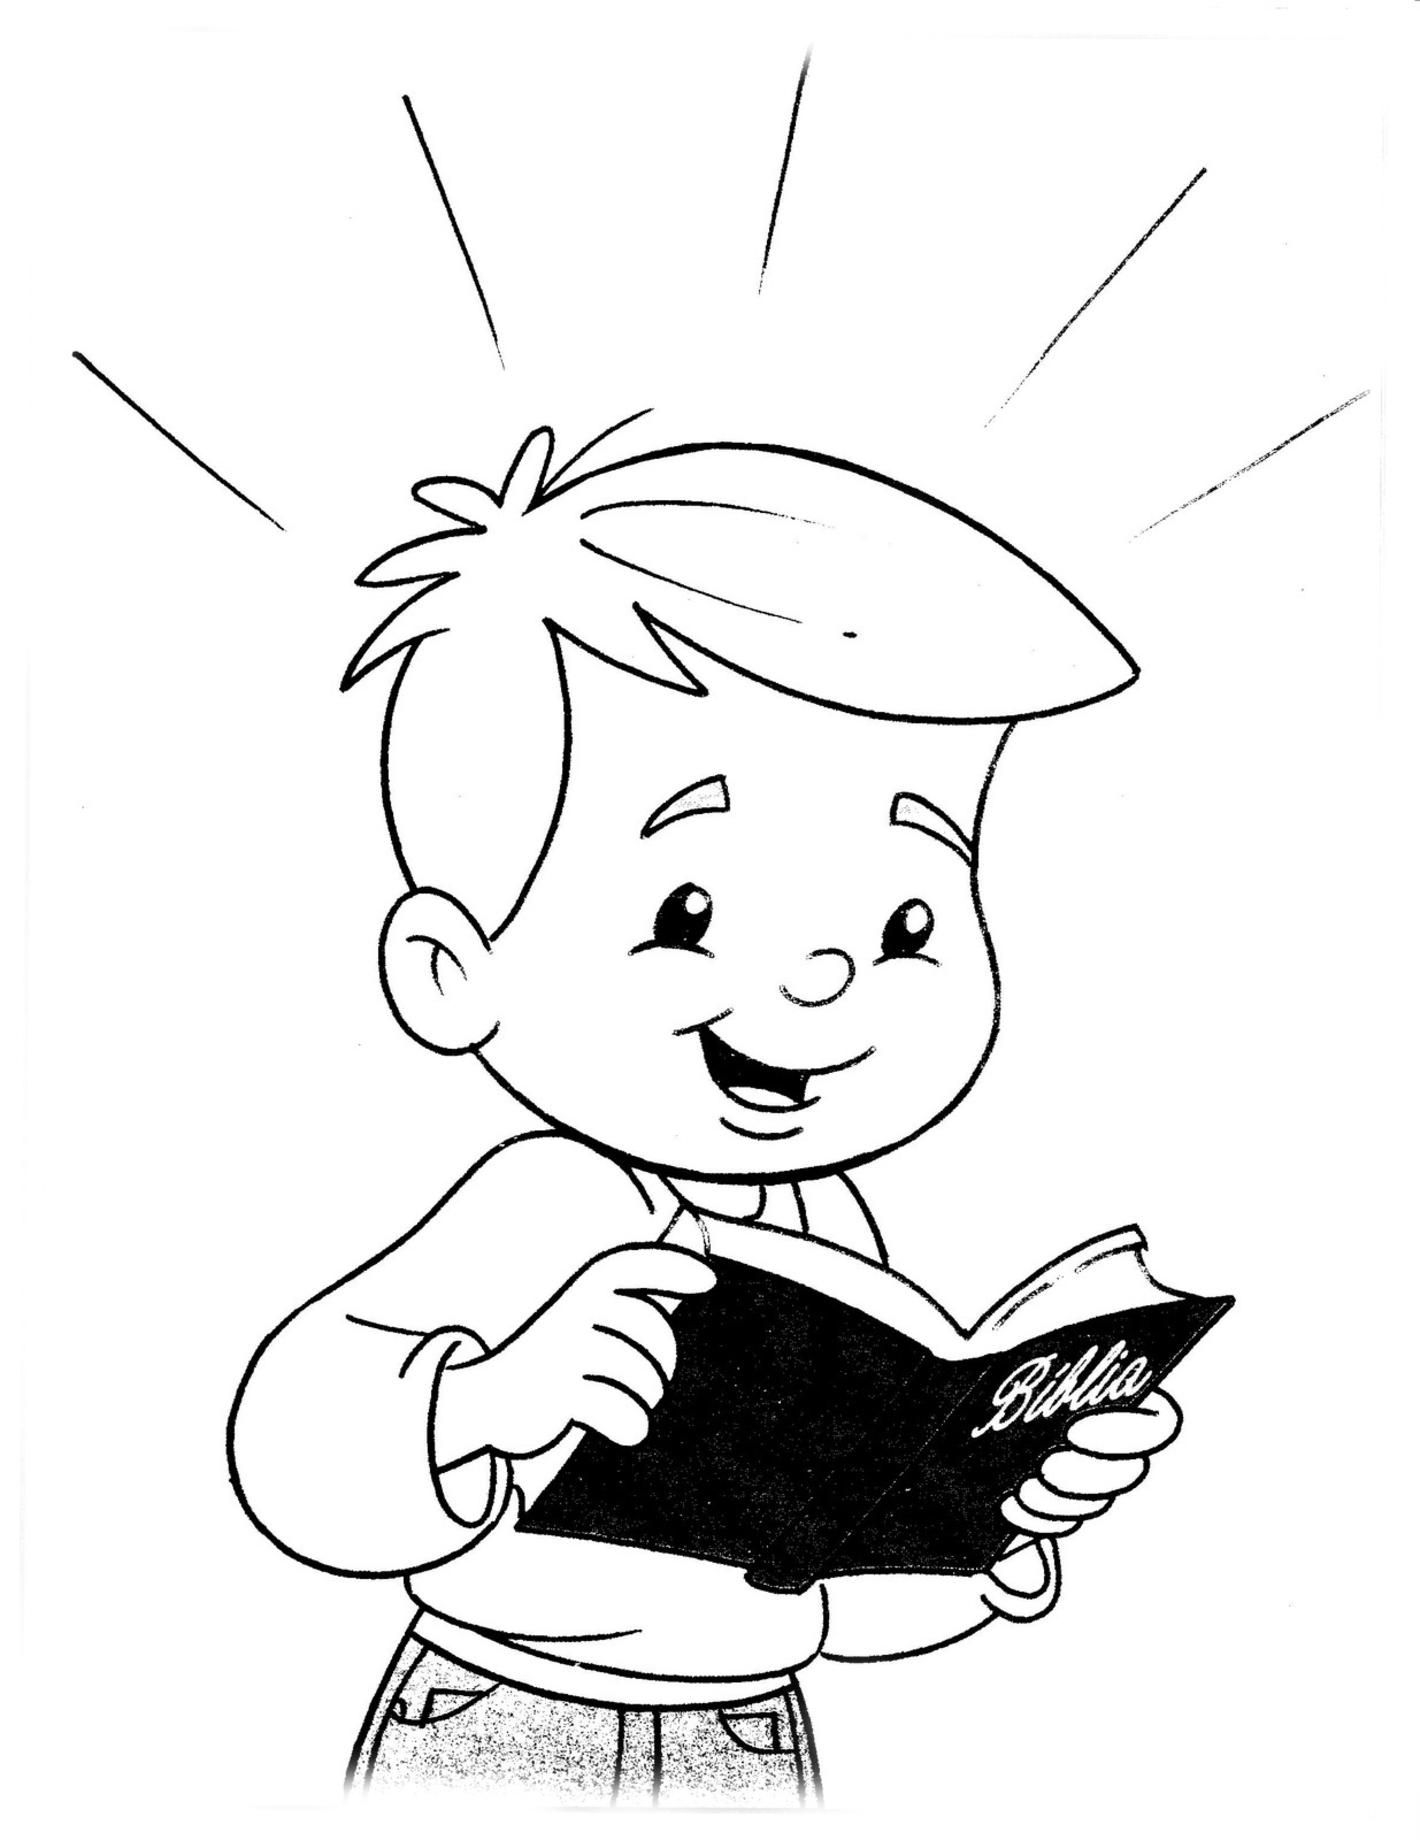 21 New Testament Coloring Pages For Kids Collection